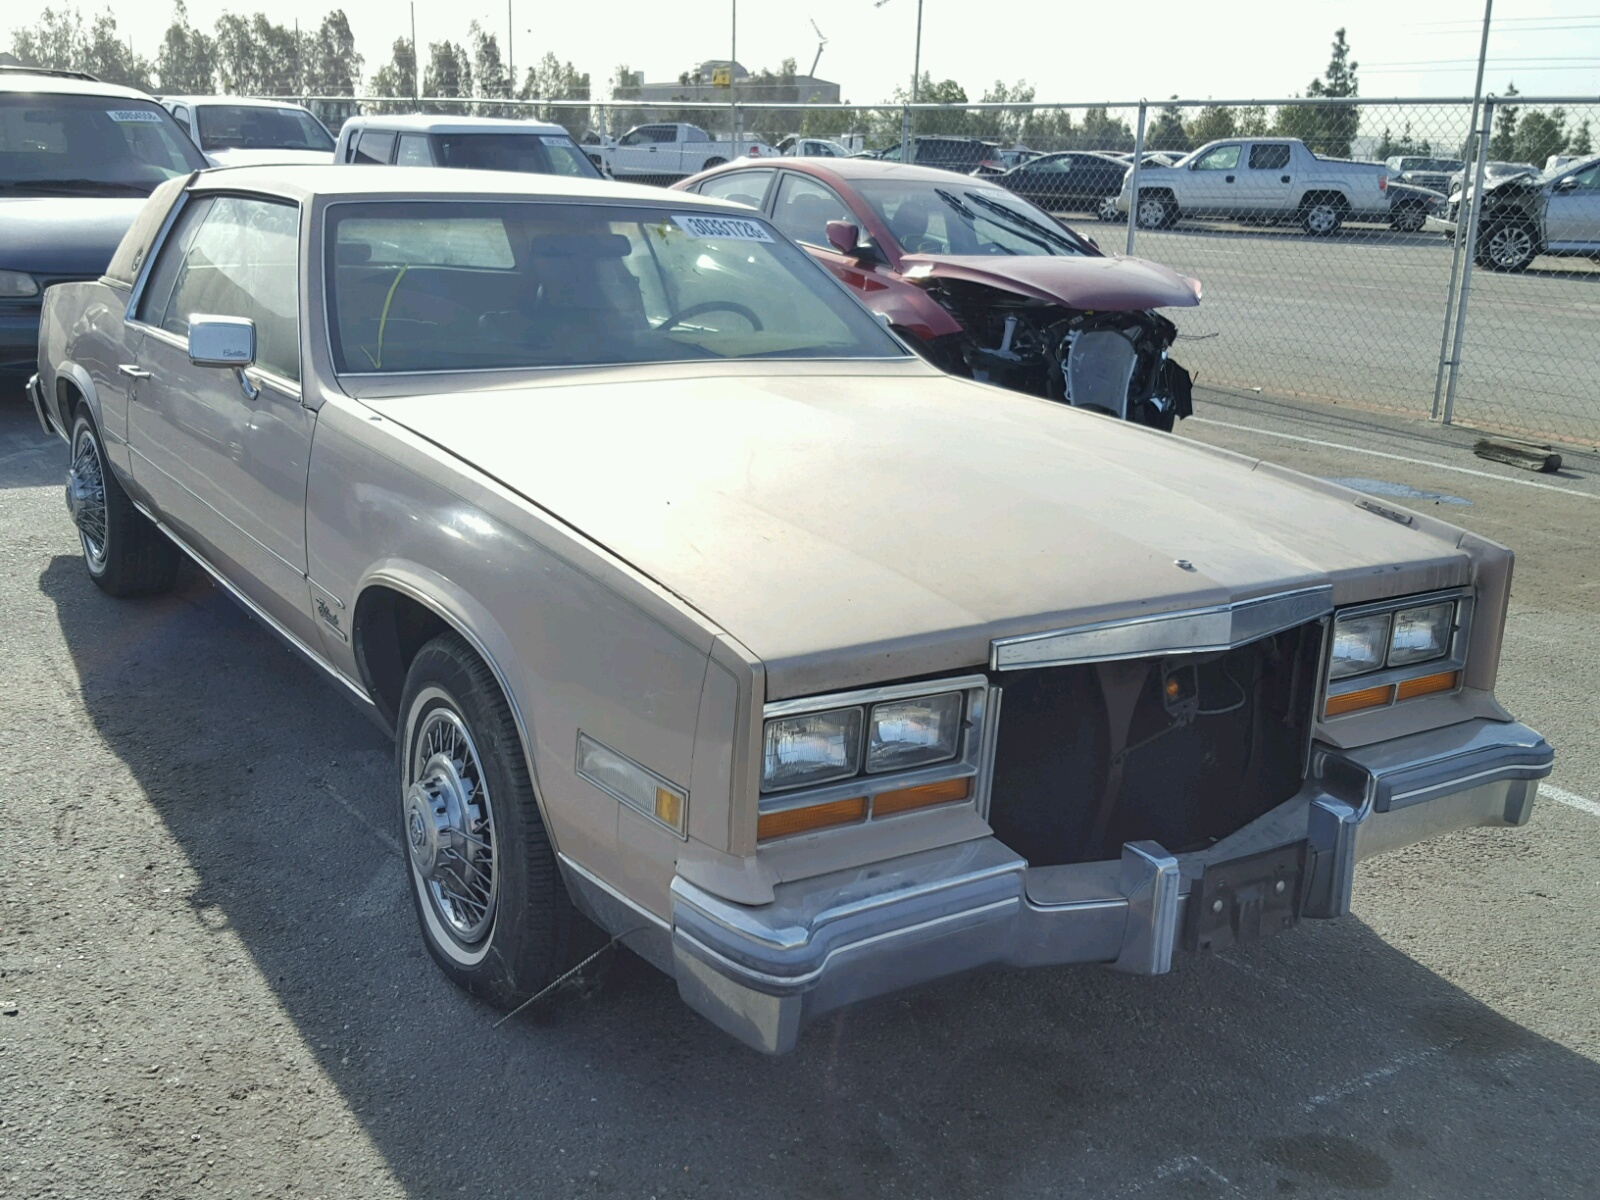 Cash Cars For Sale In Houston Tx: 1977 Cadillac Seville For Sale At Copart Houston, TX Lot